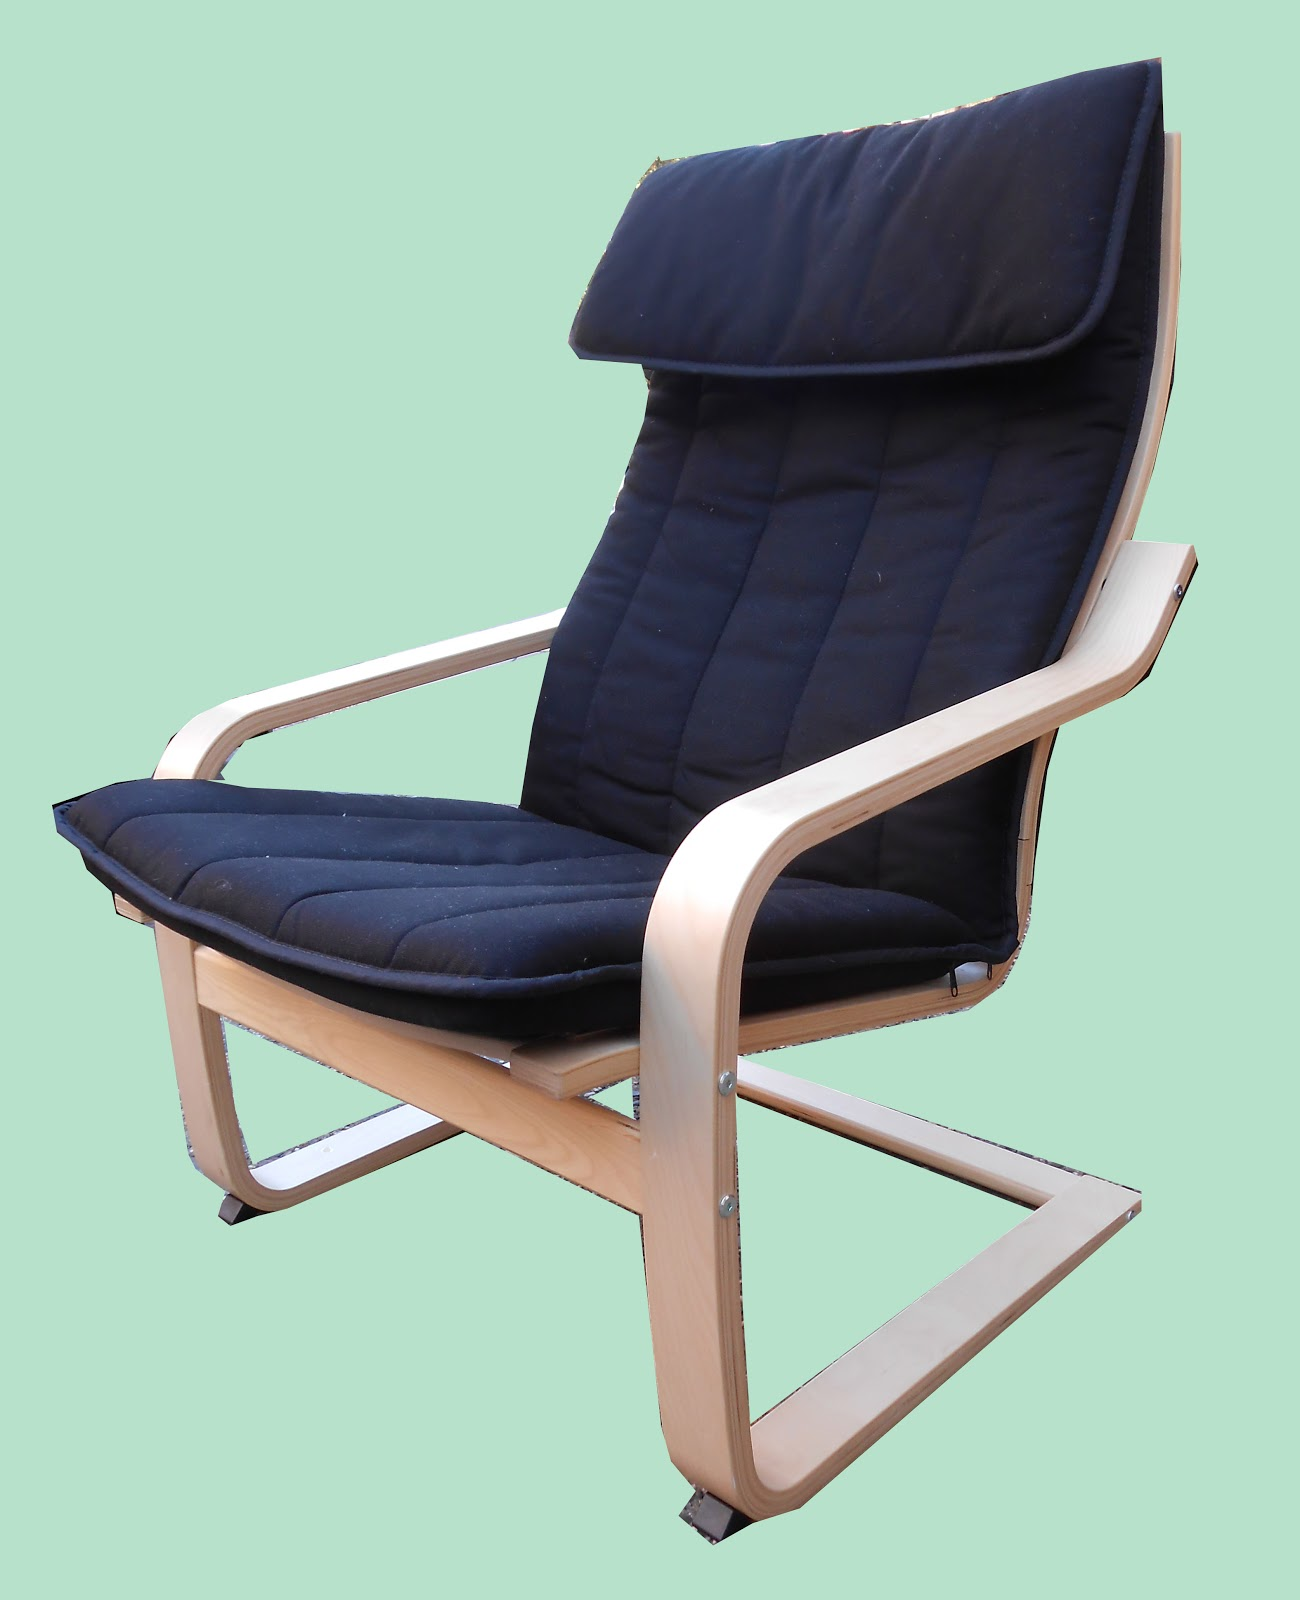 Uhuru Furniture & Collectibles IKEA Poang Lounge Chair SOLD